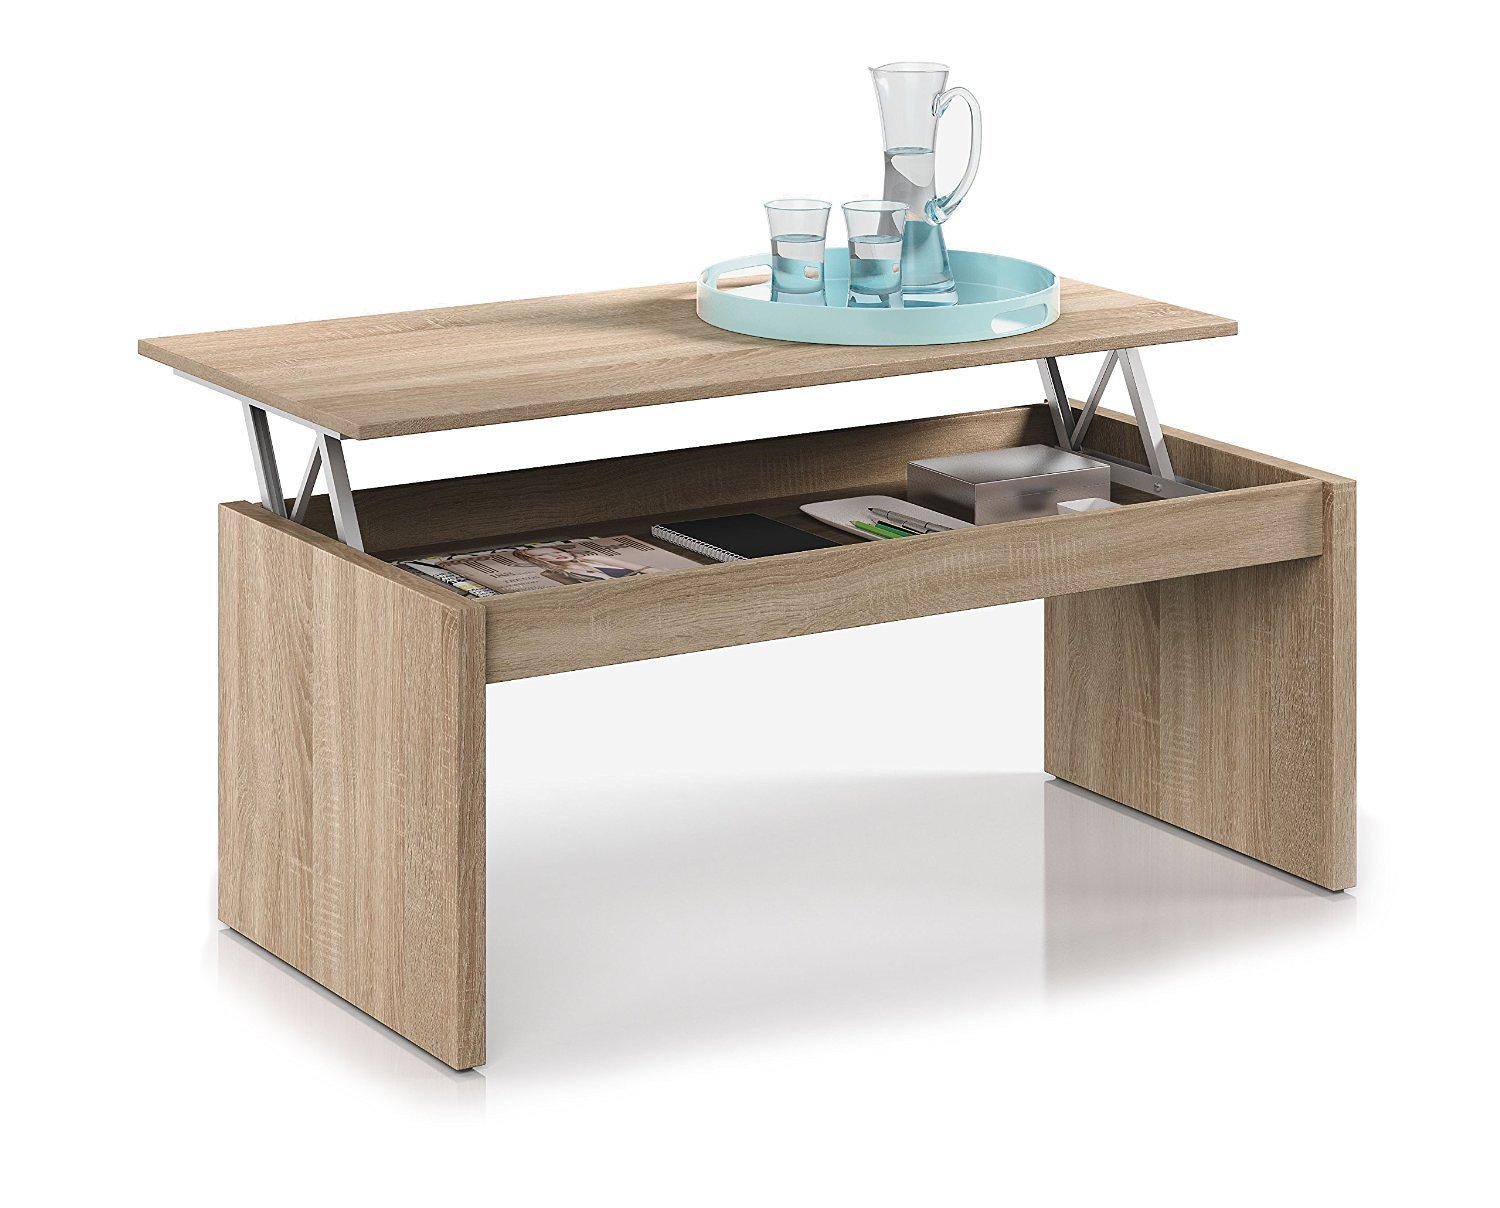 Table Basse Plateau Relevable But Table Basse But Verone With Table Basse Plateau Relevable But